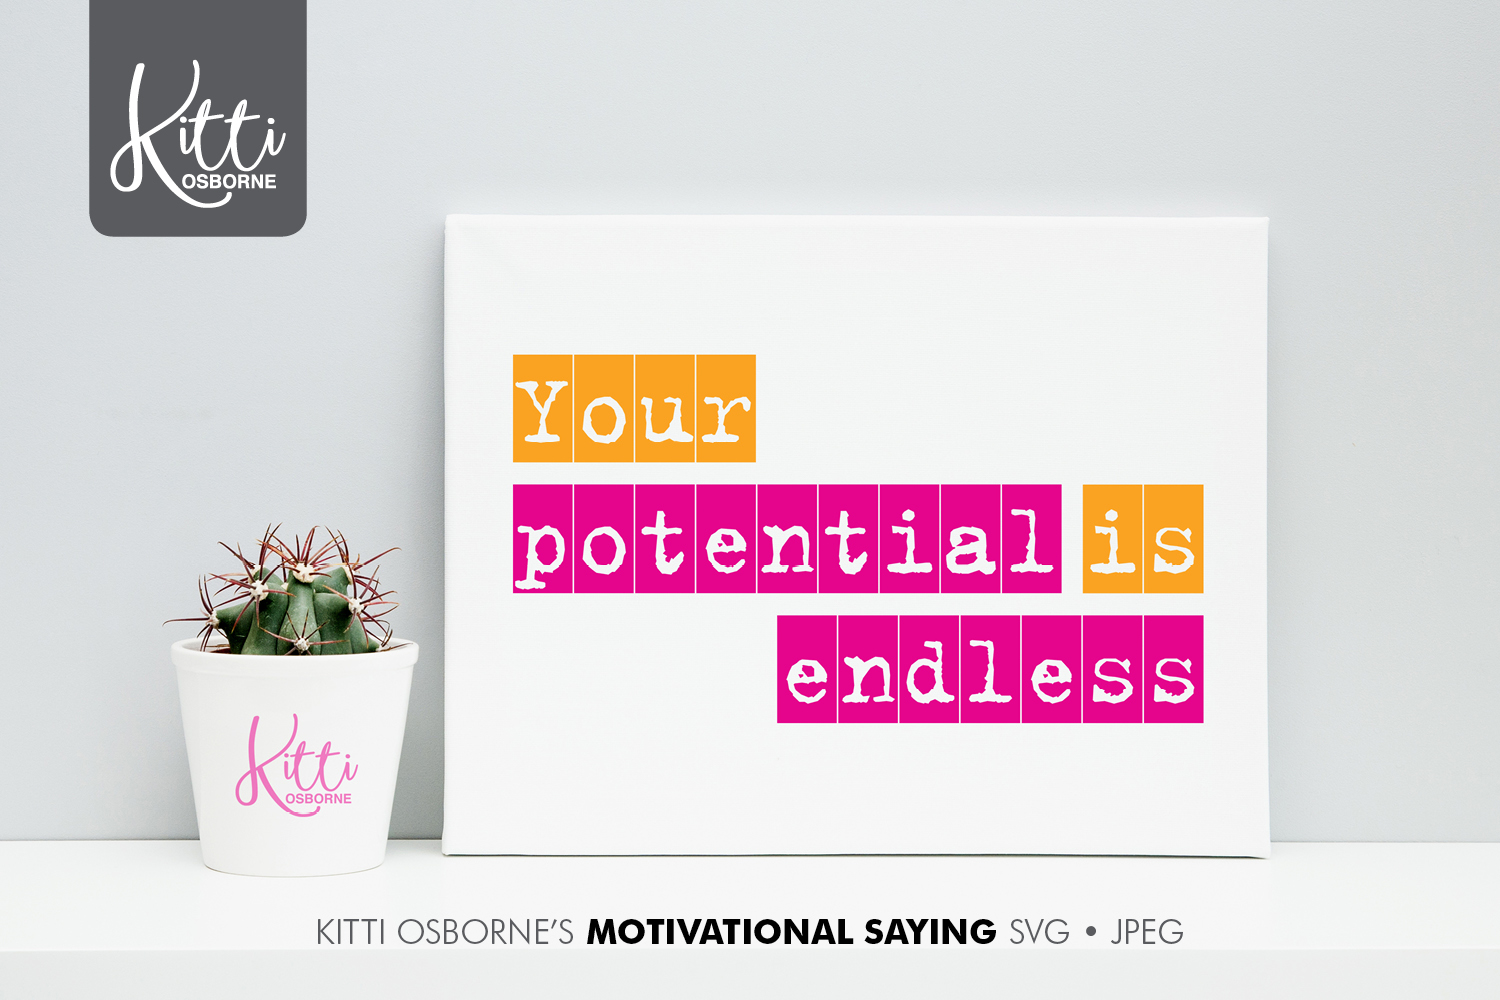 Motivational Saying SVG, Jpeg example image 1